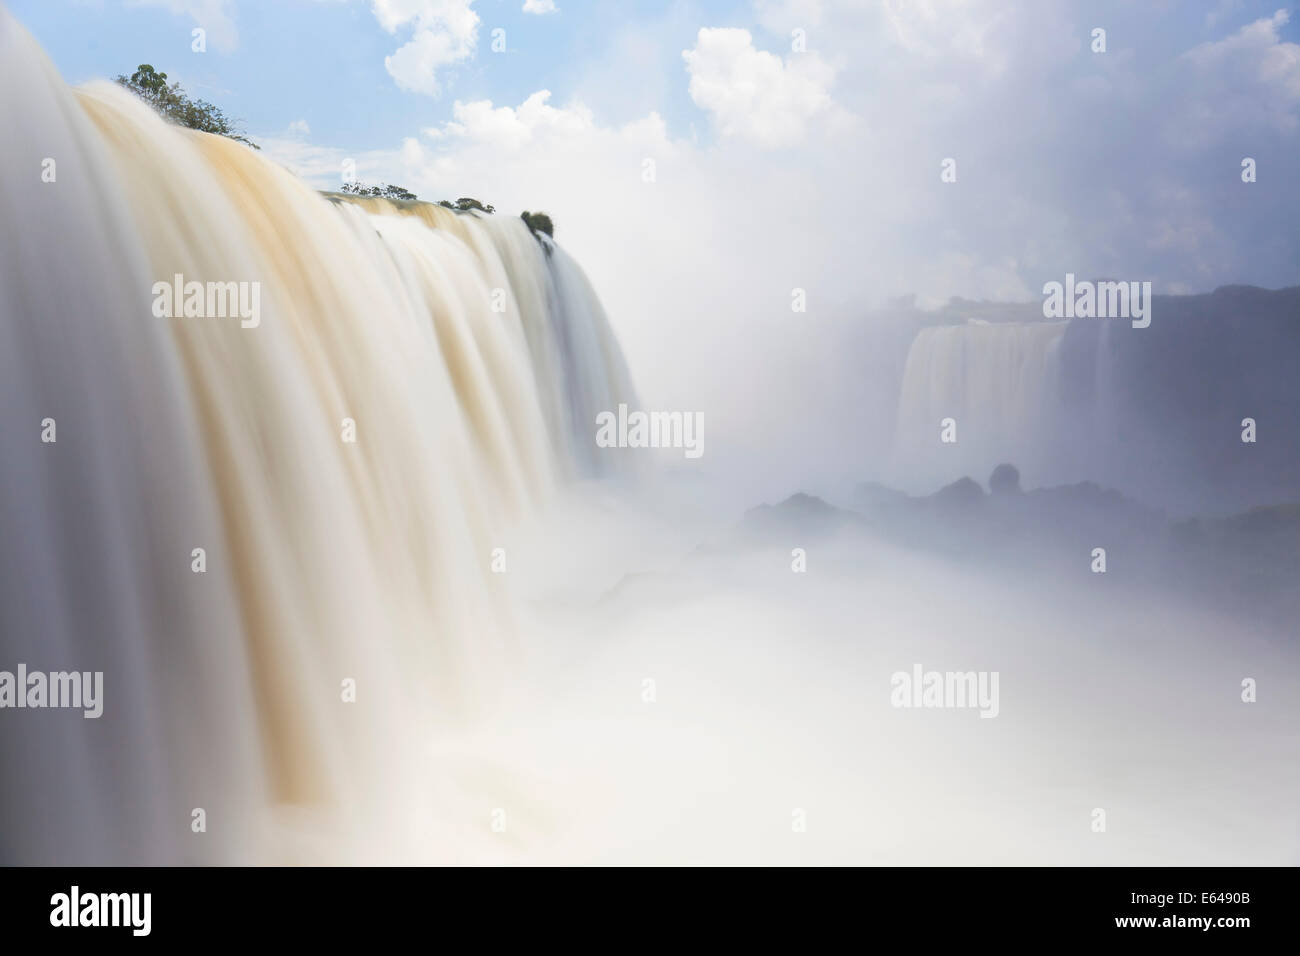 Iguacu (Iguazu Falls), Cataratta Foz do Iguacu, Parana, Parc National de l'Iguazu, Brésil Photo Stock